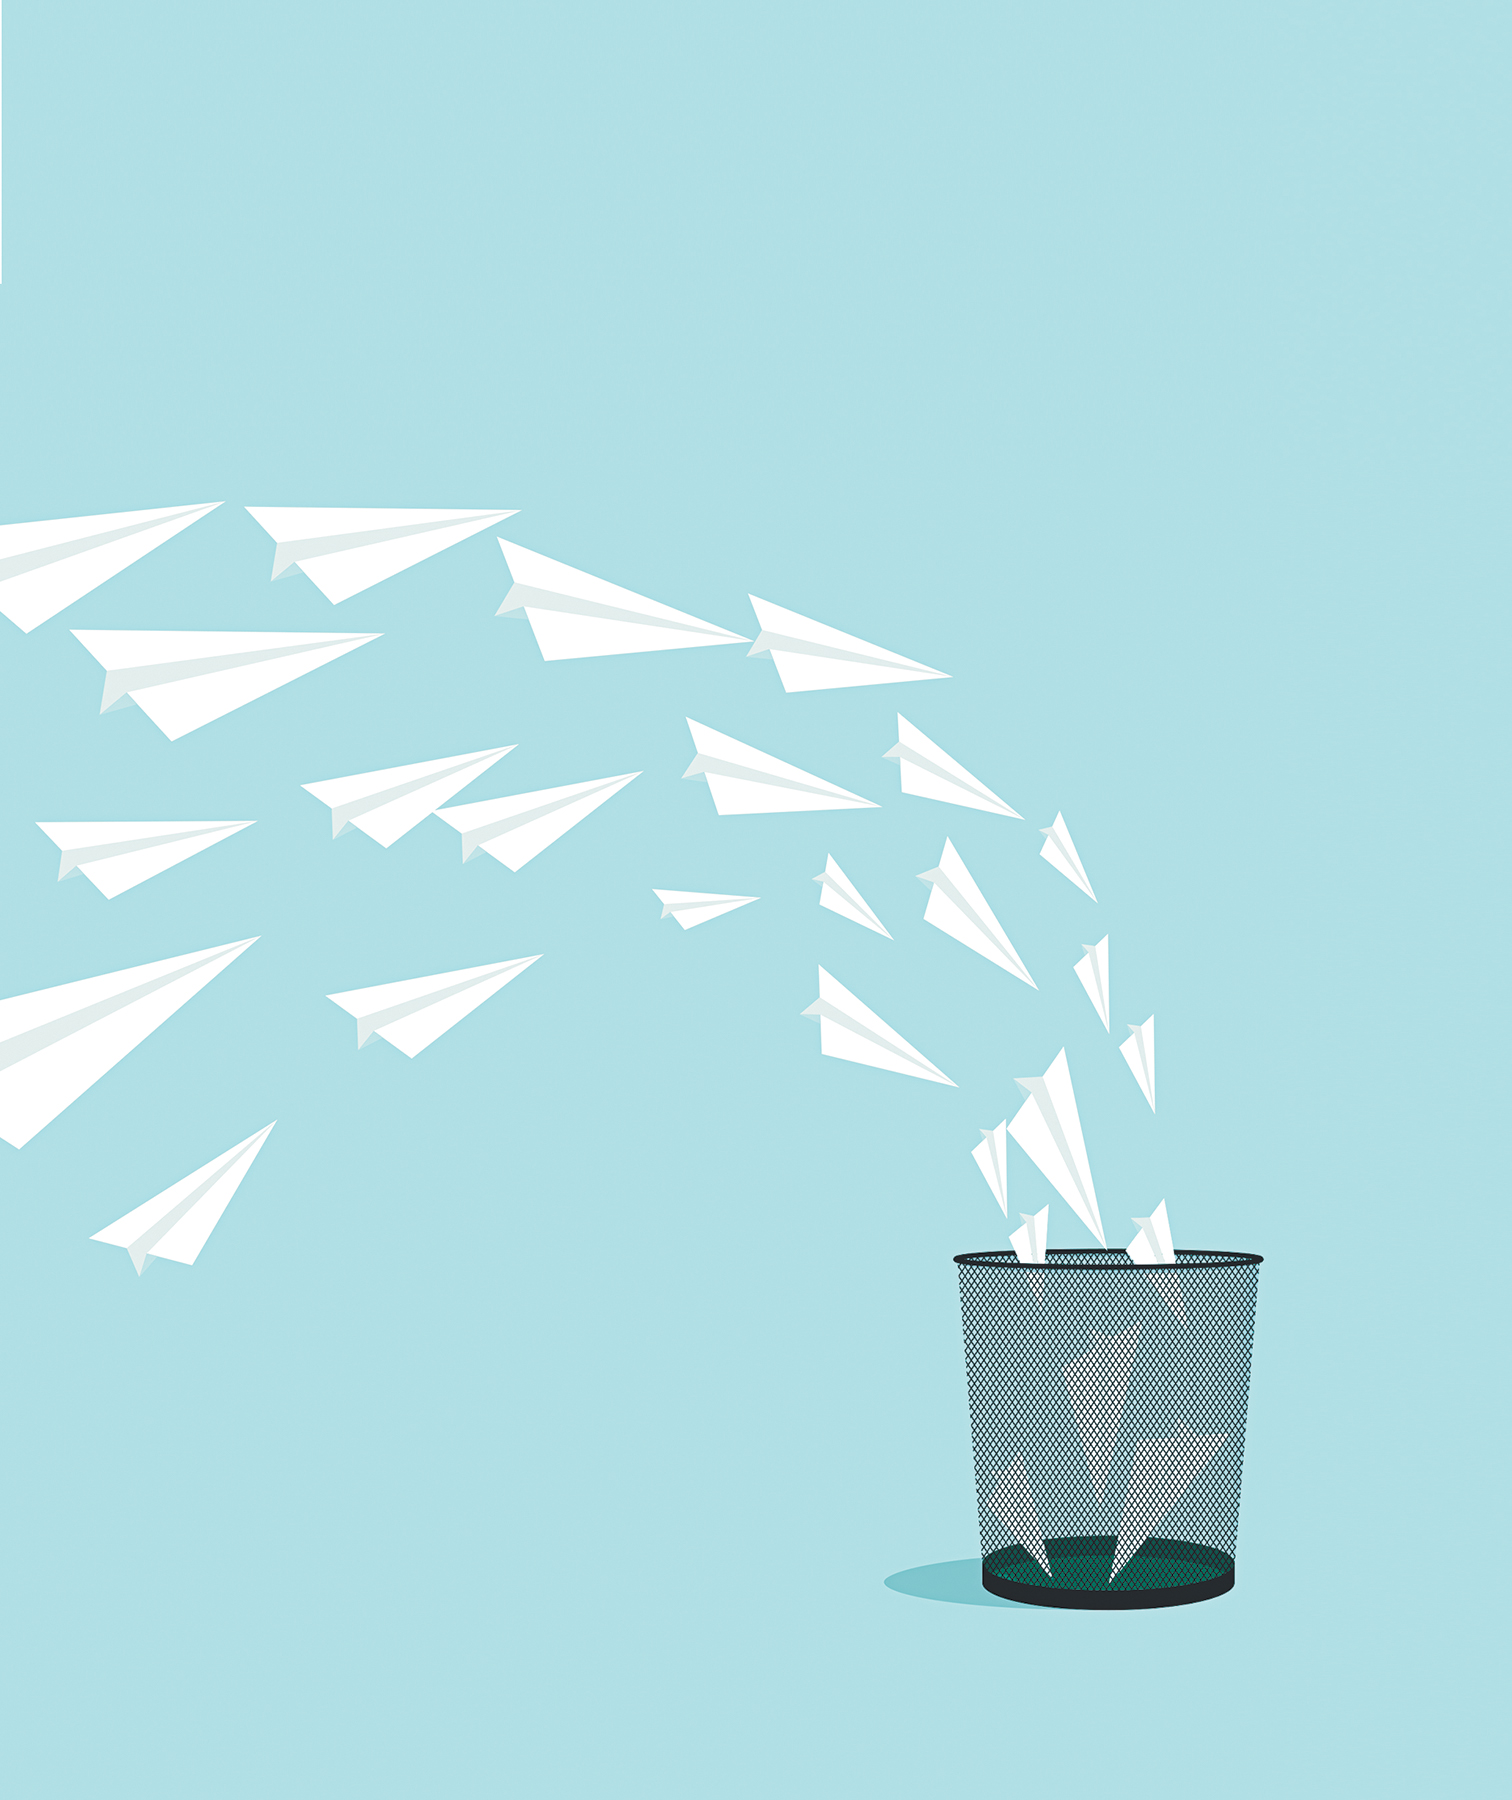 Illustration: paper airplanes flying into bin